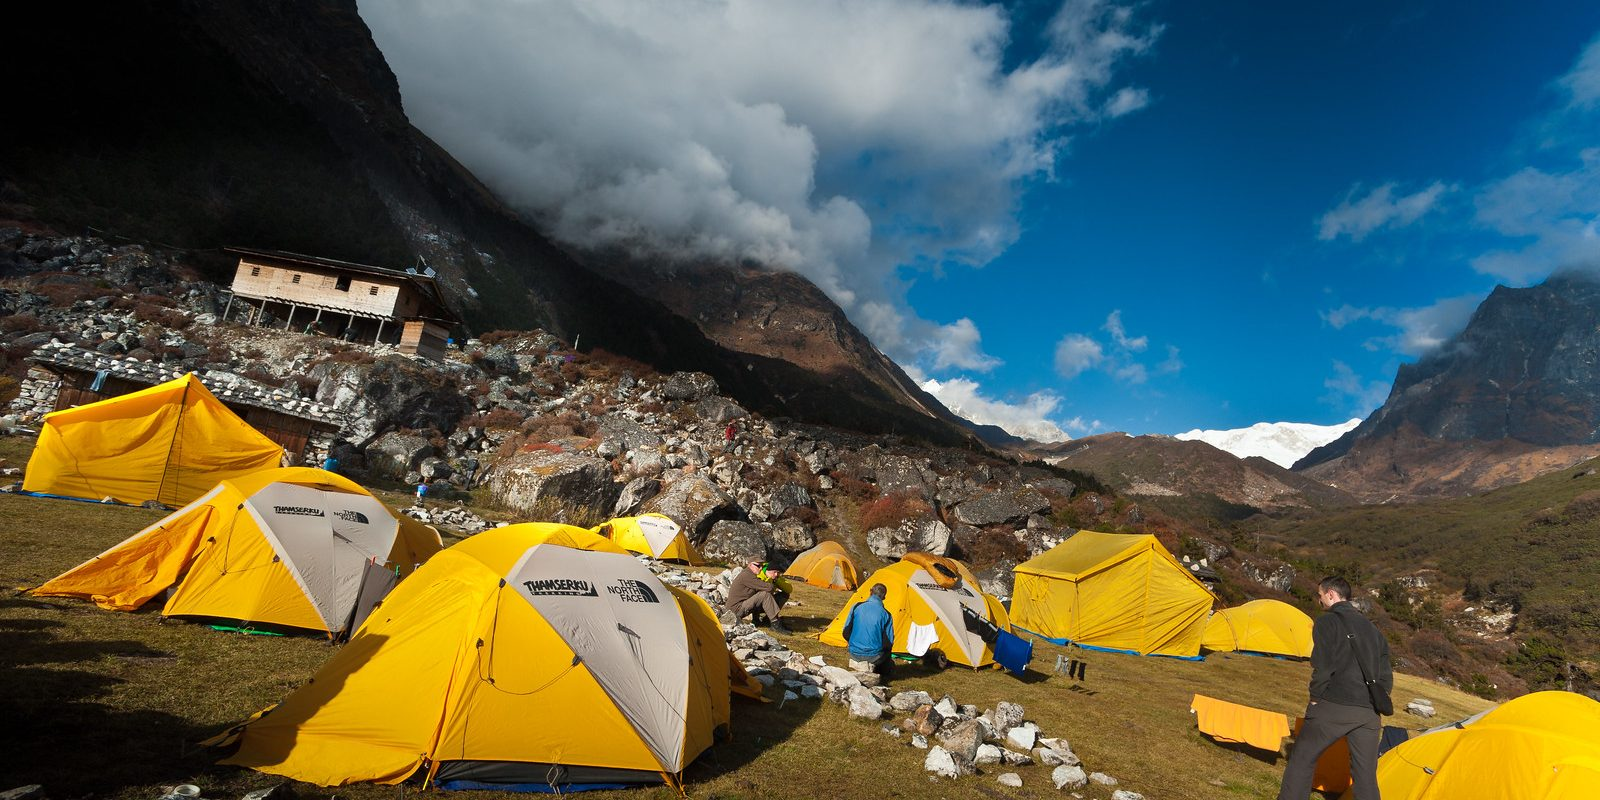 Camping & Observe The Remote Mountain Villages